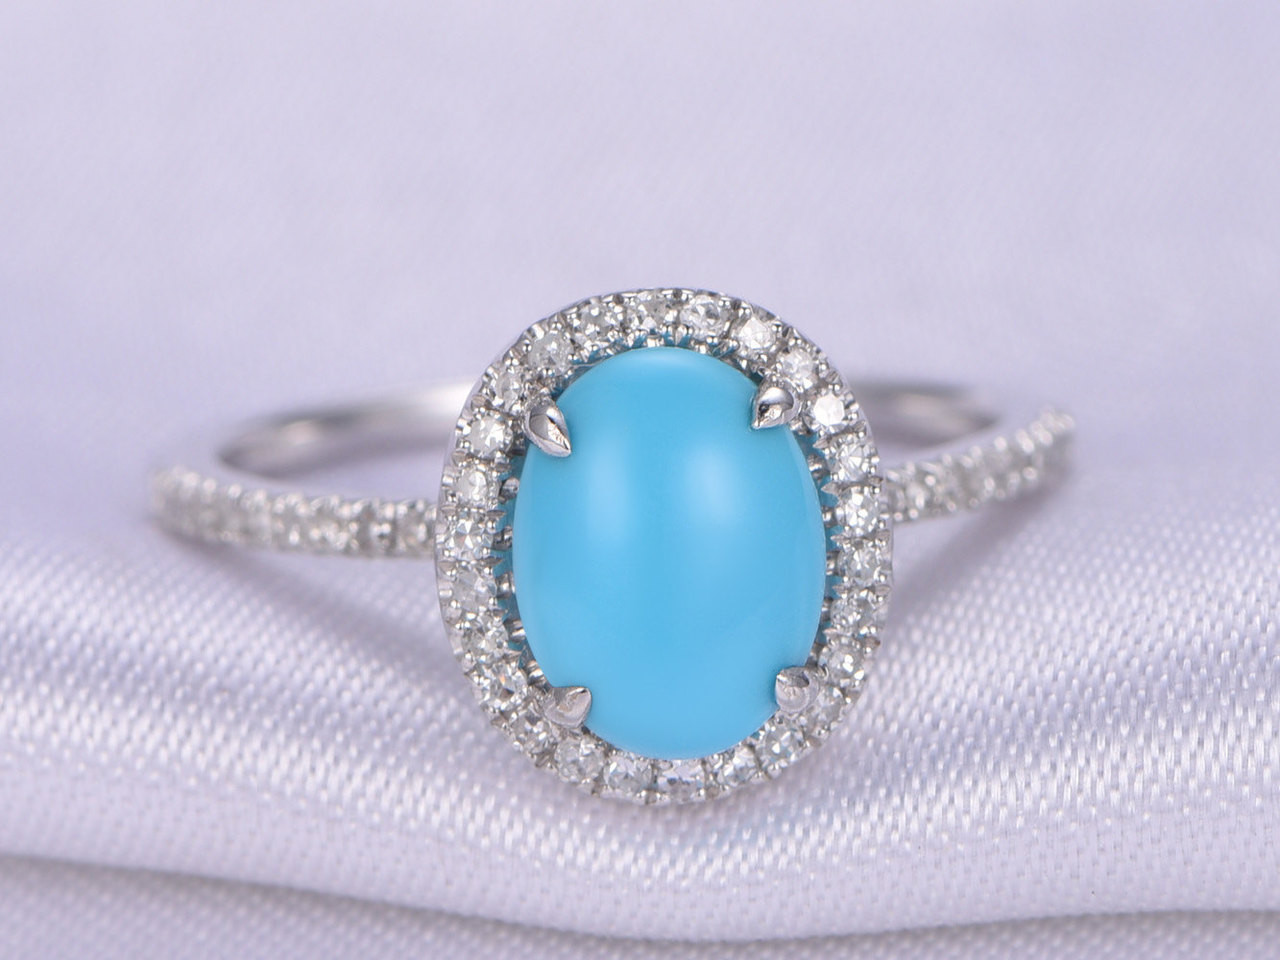 sleeping beauty turquoise ring7x9mm oval cut turquoise engagement ring14k white gold - Turquoise Wedding Ring